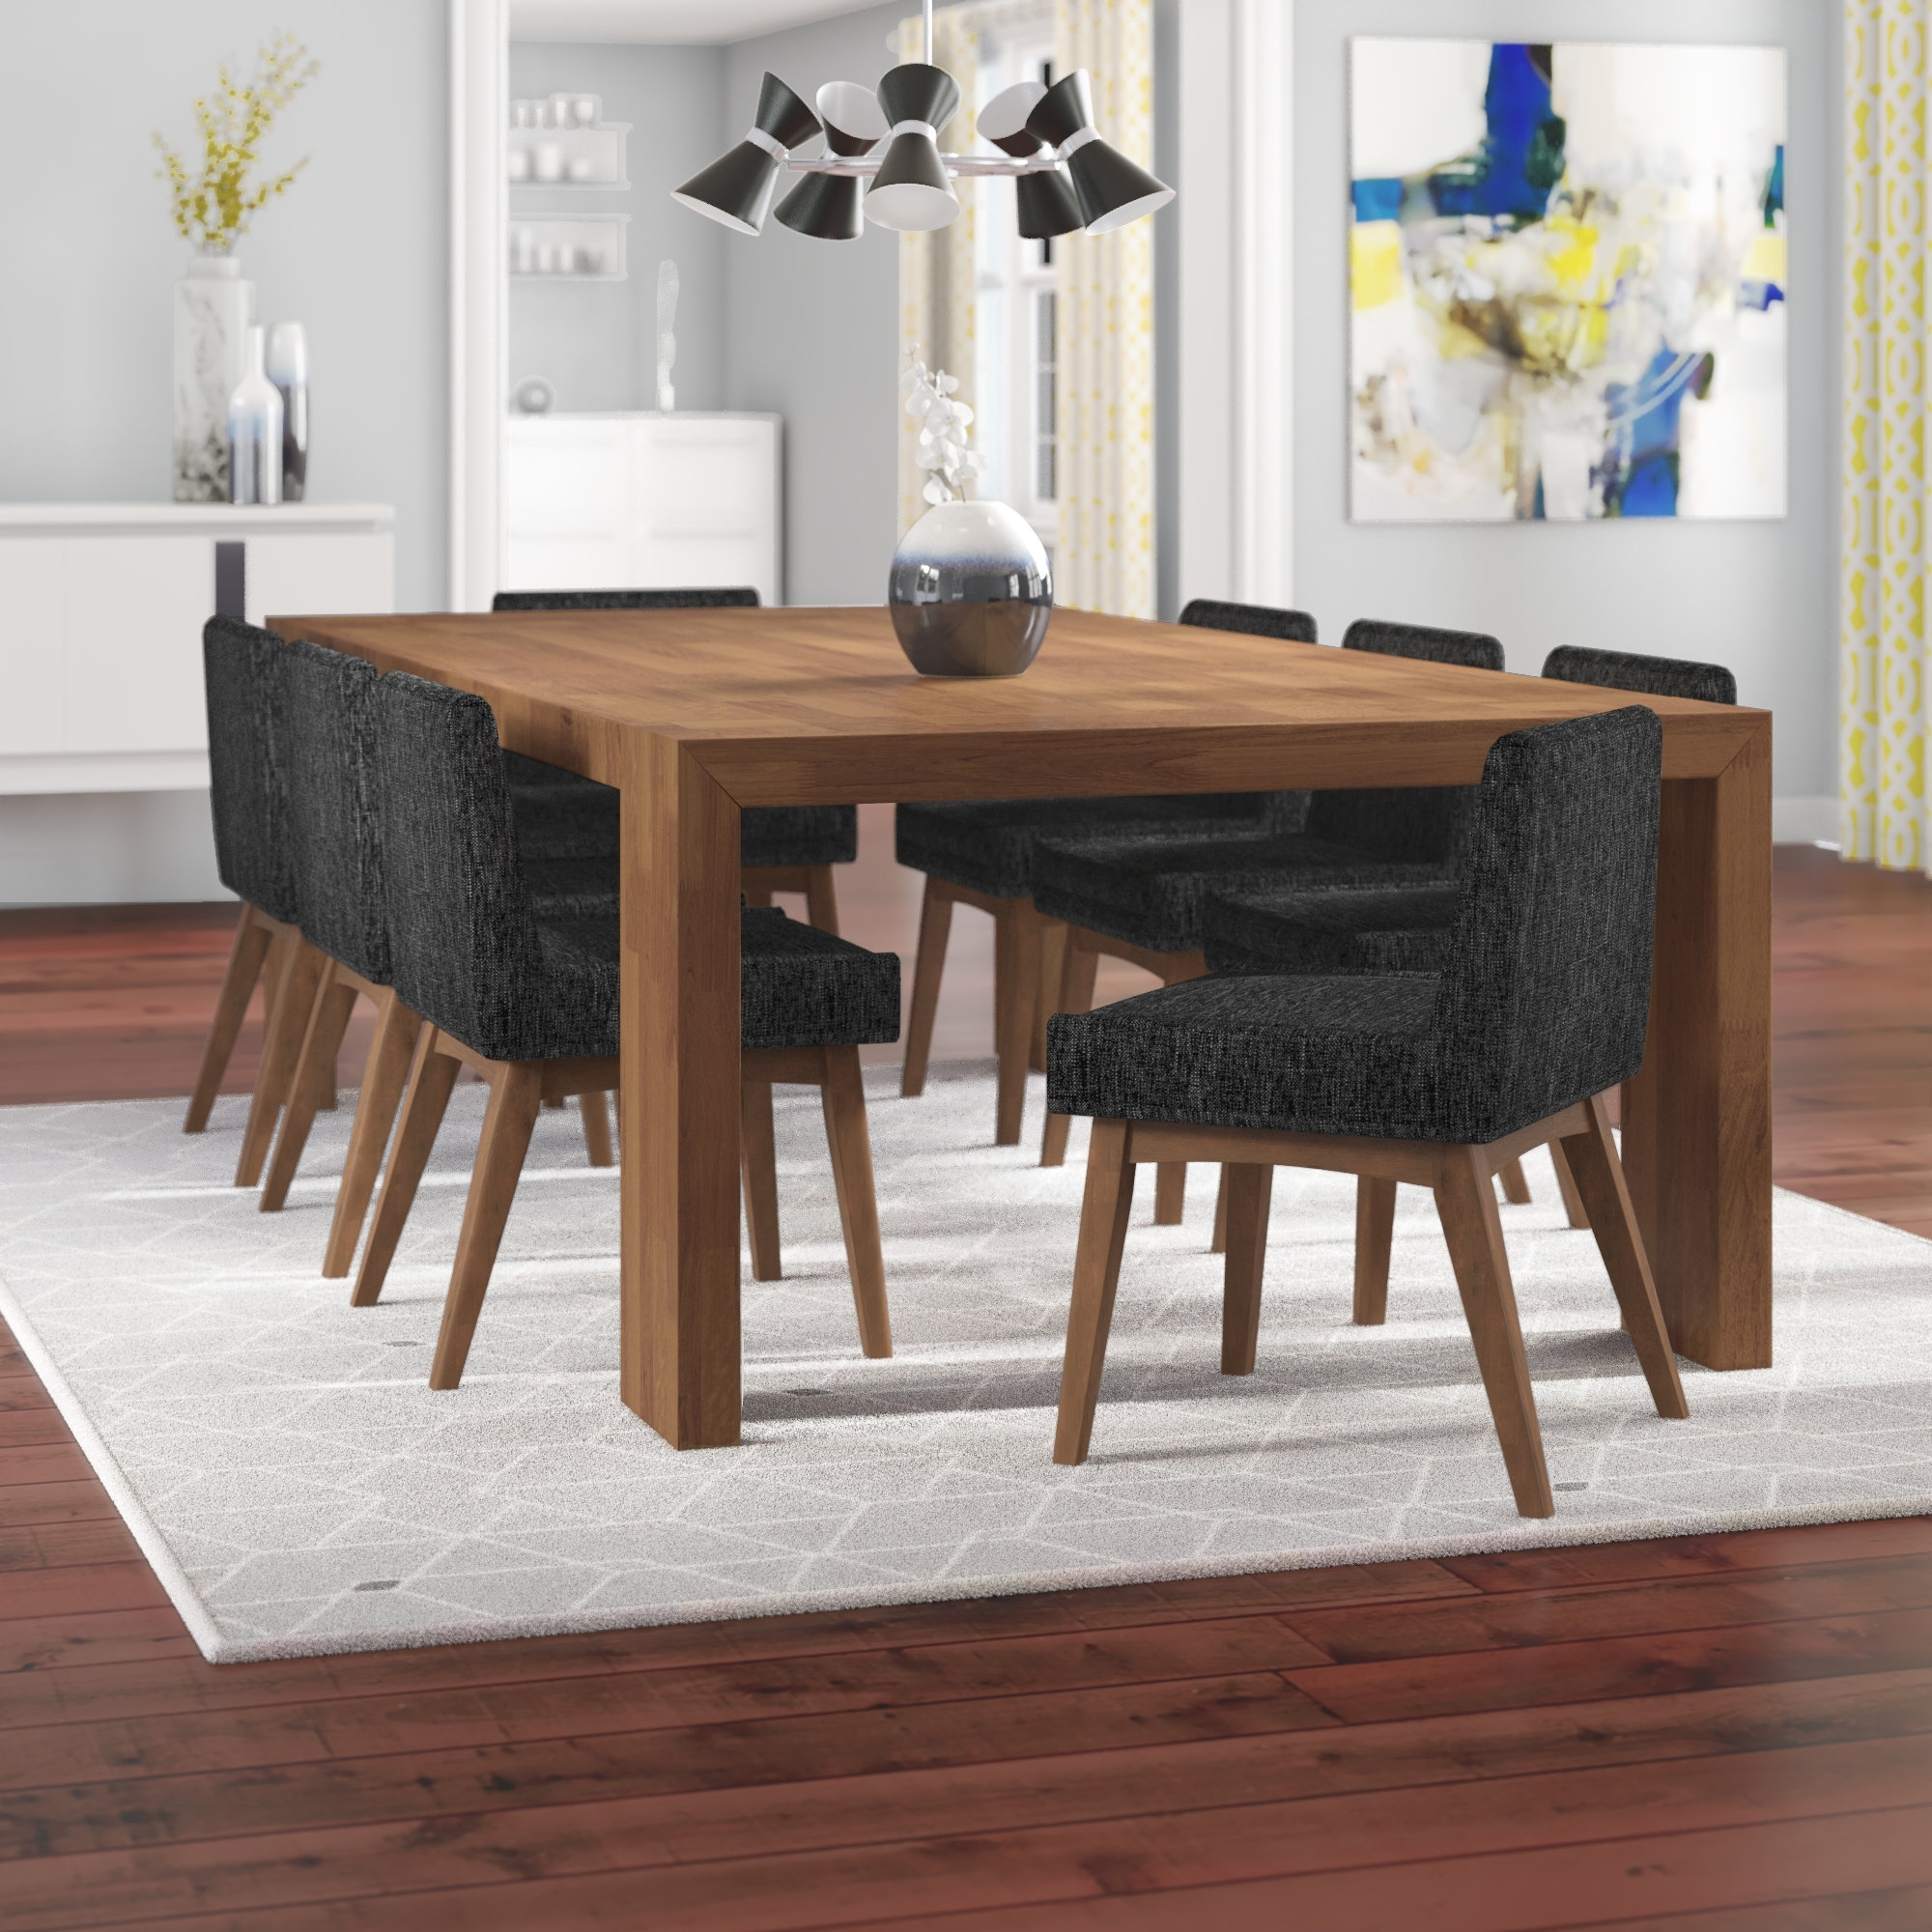 Corrigan Studio Crume 9 Piece Dining Set | Wayfair In Most Current Caira 9 Piece Extension Dining Sets (Image 13 of 20)